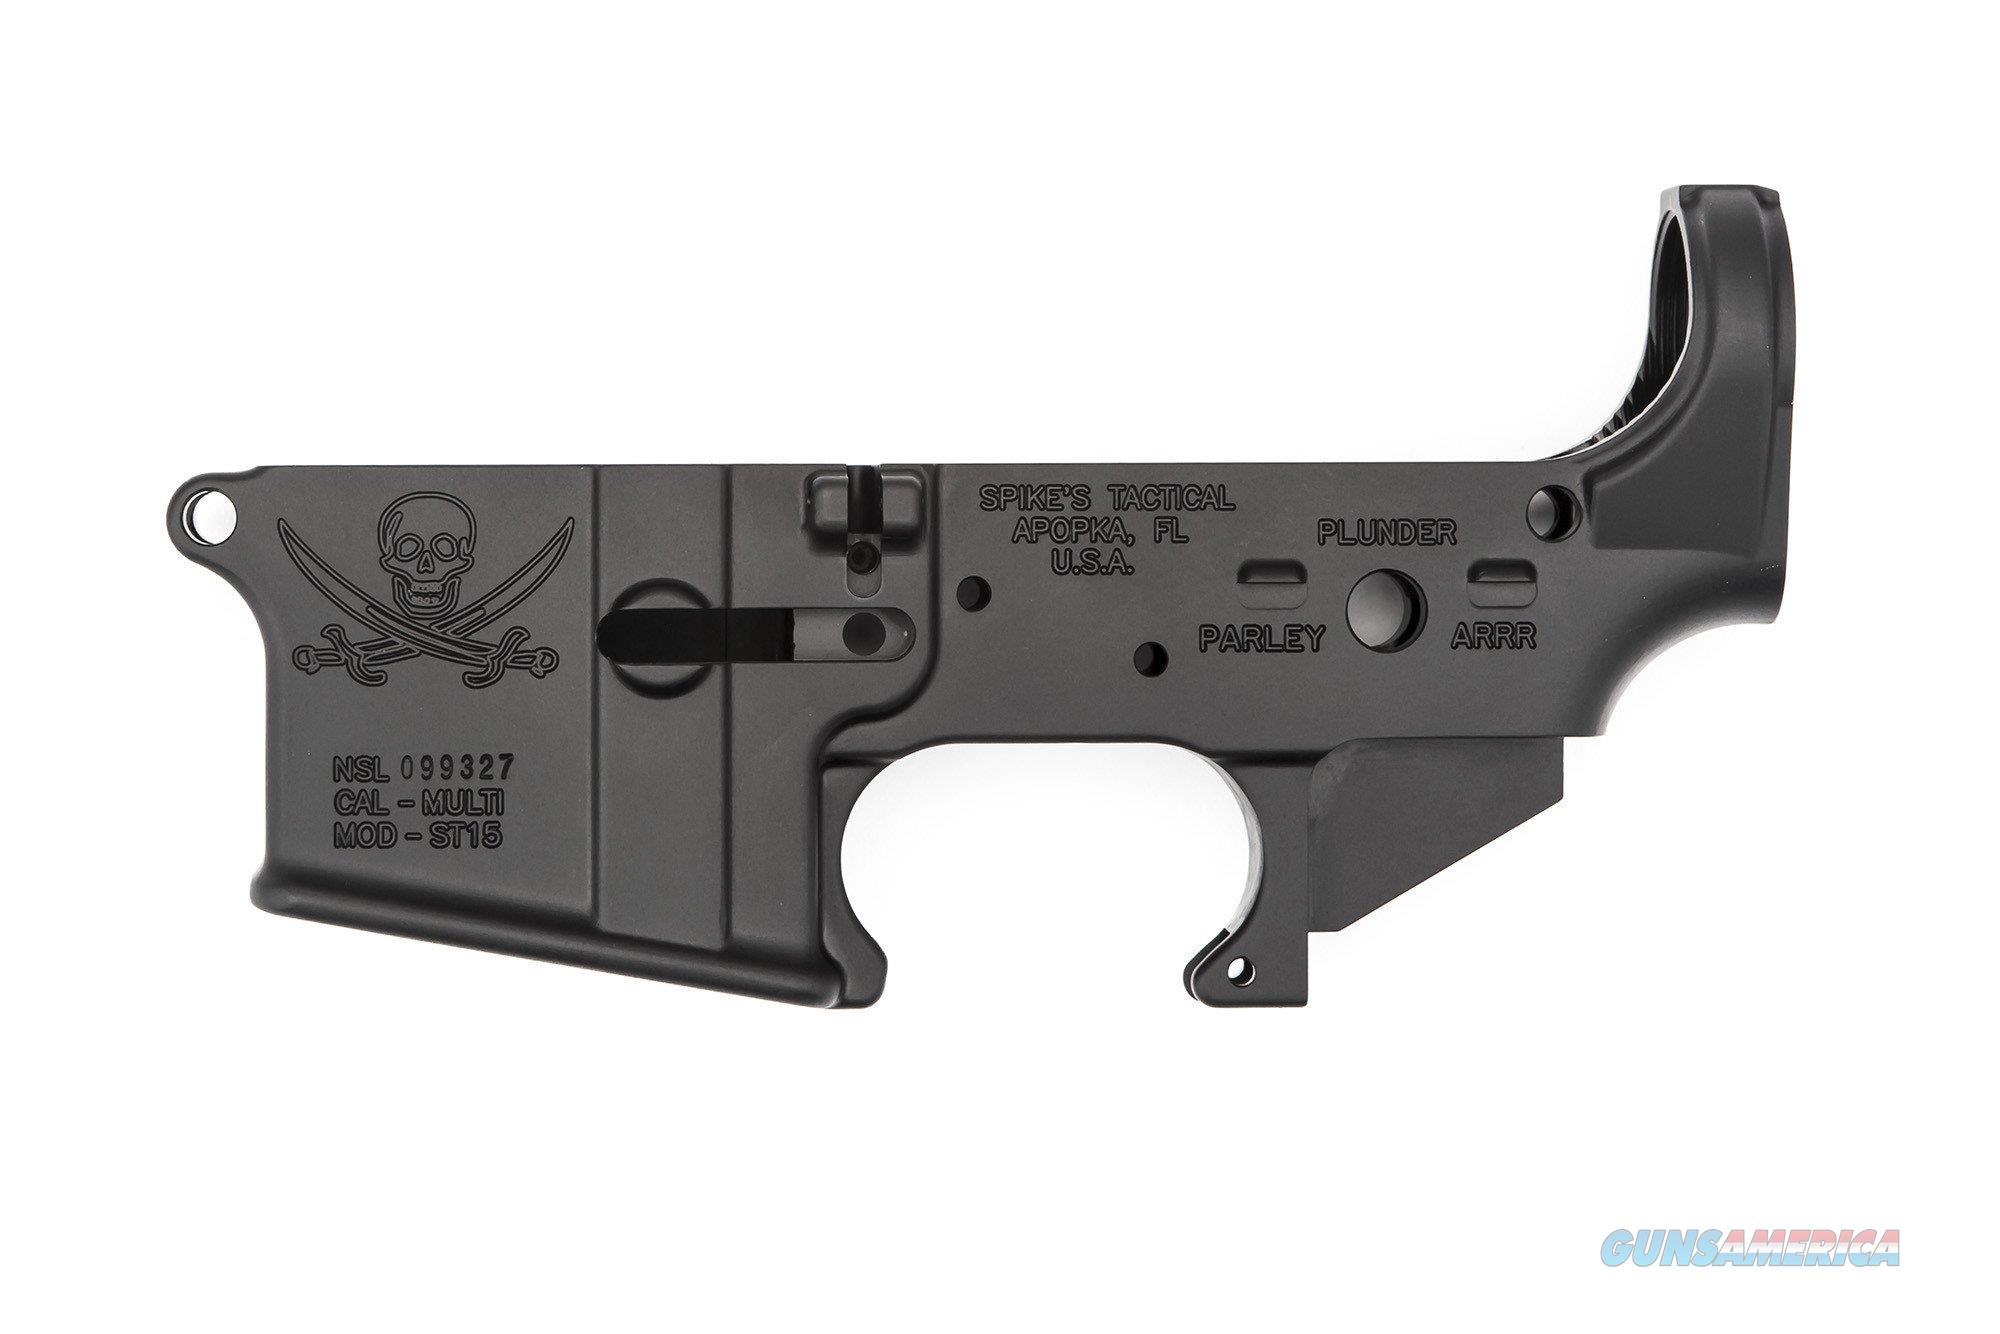 Spike's Tactical Calico Jack Stripped Lower Receiver.  Guns > Pistols > Spikes Tactical Pistols